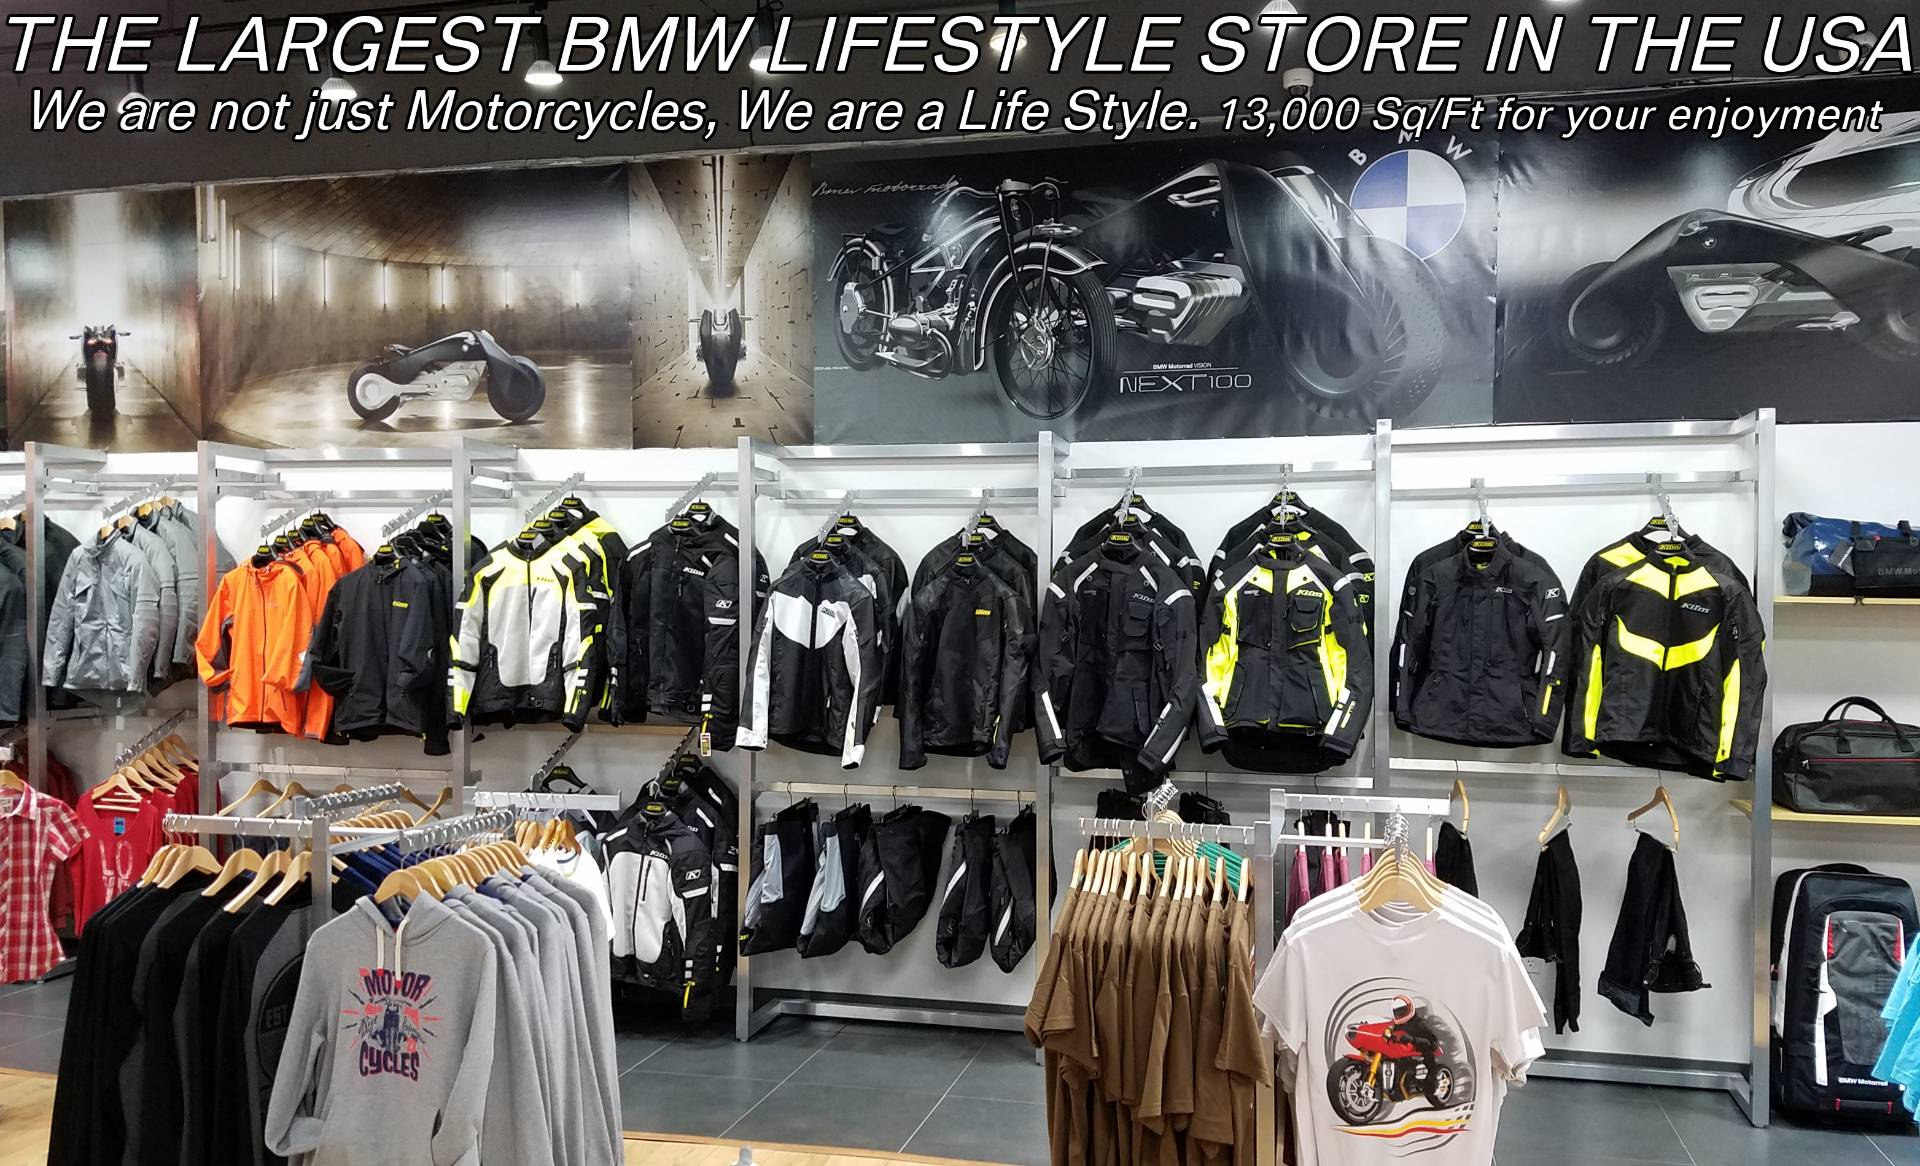 Used 2018 BMW R 1200 GS for sale, BMW R 1200GS for sale, BMW Motorcycle R1200GS, used BMW 1200GS, DUAL, GSA, BMW. BMW Motorcycles of Miami, Motorcycles of Miami, Motorcycles Miami, New Motorcycles, Used Motorcycles, pre-owned. #BMWMotorcyclesOfMiami #MotorcyclesOfMiami. - Photo 55